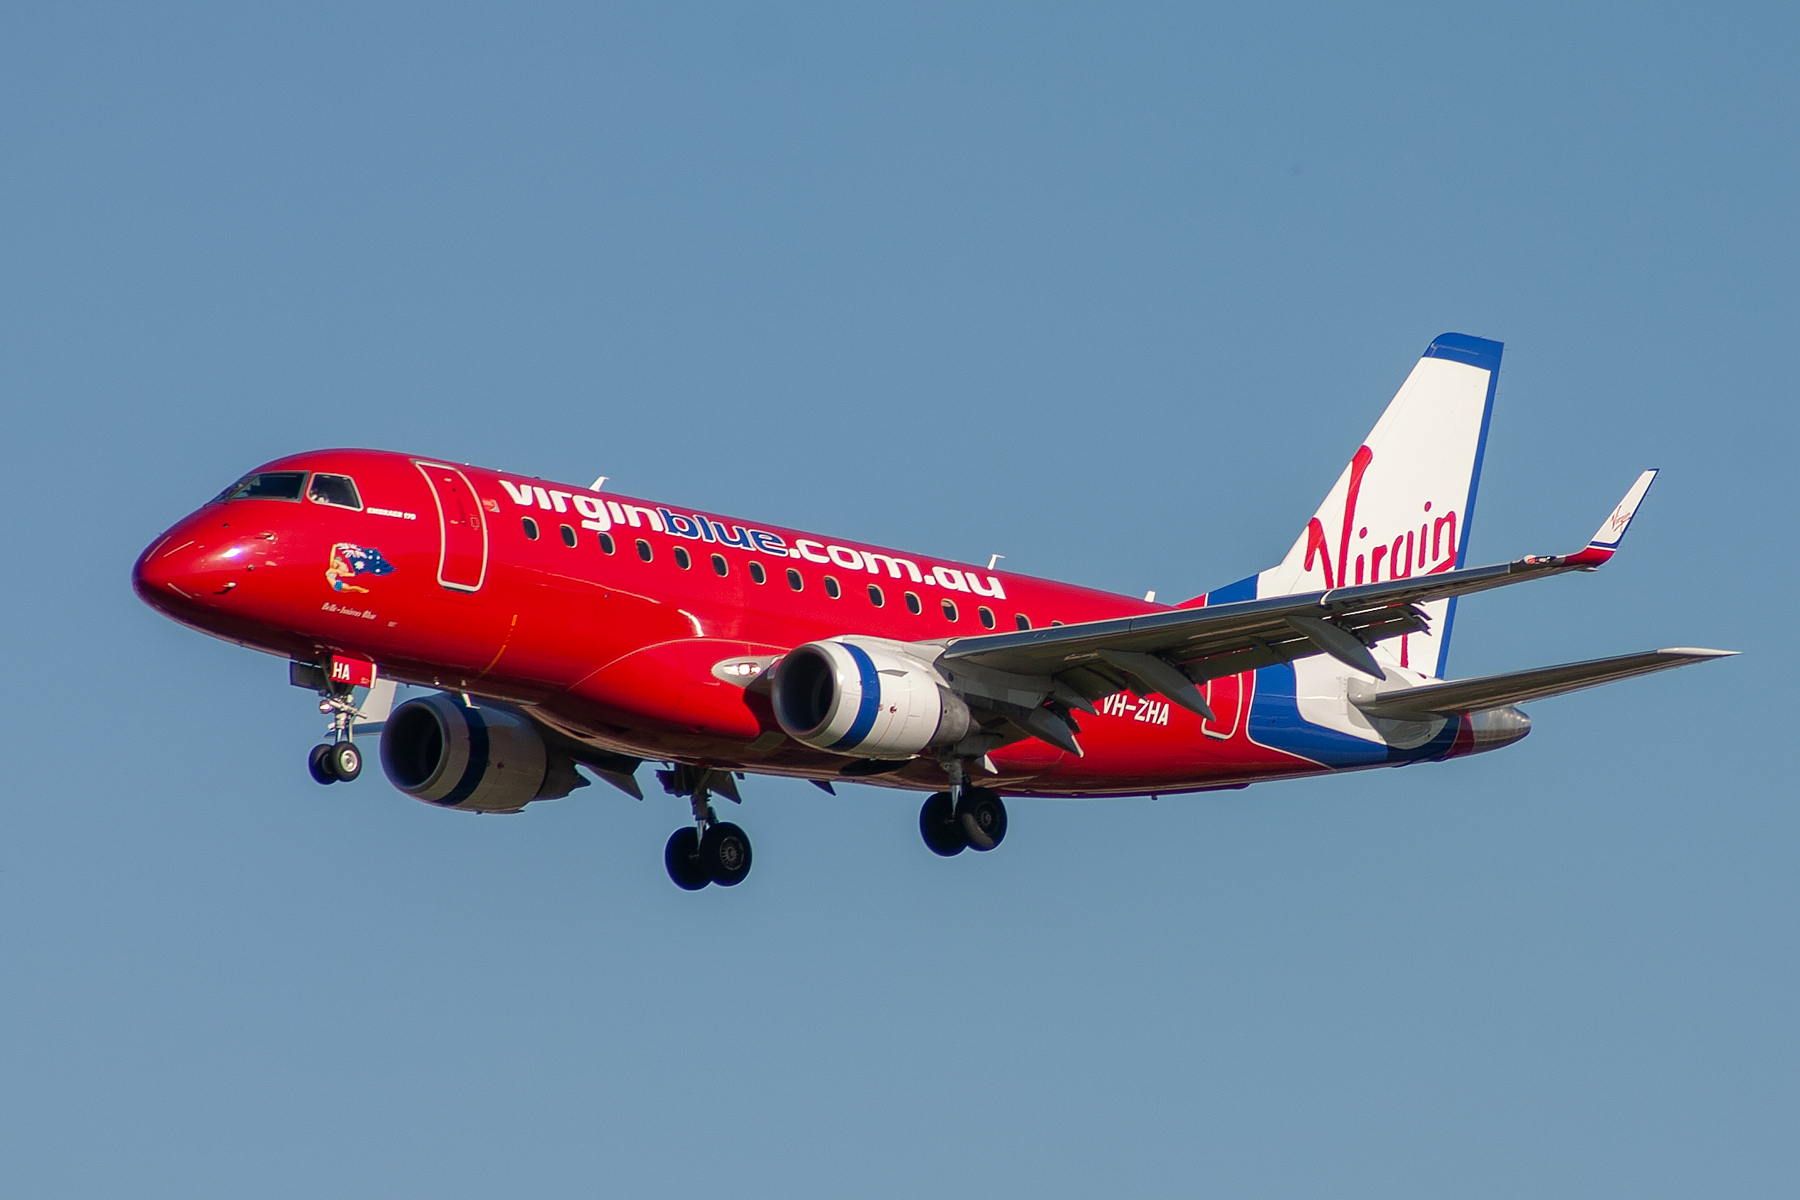 Virgin Blue Airlines Embraer E170LR VH-ZHA at Kingsford Smith